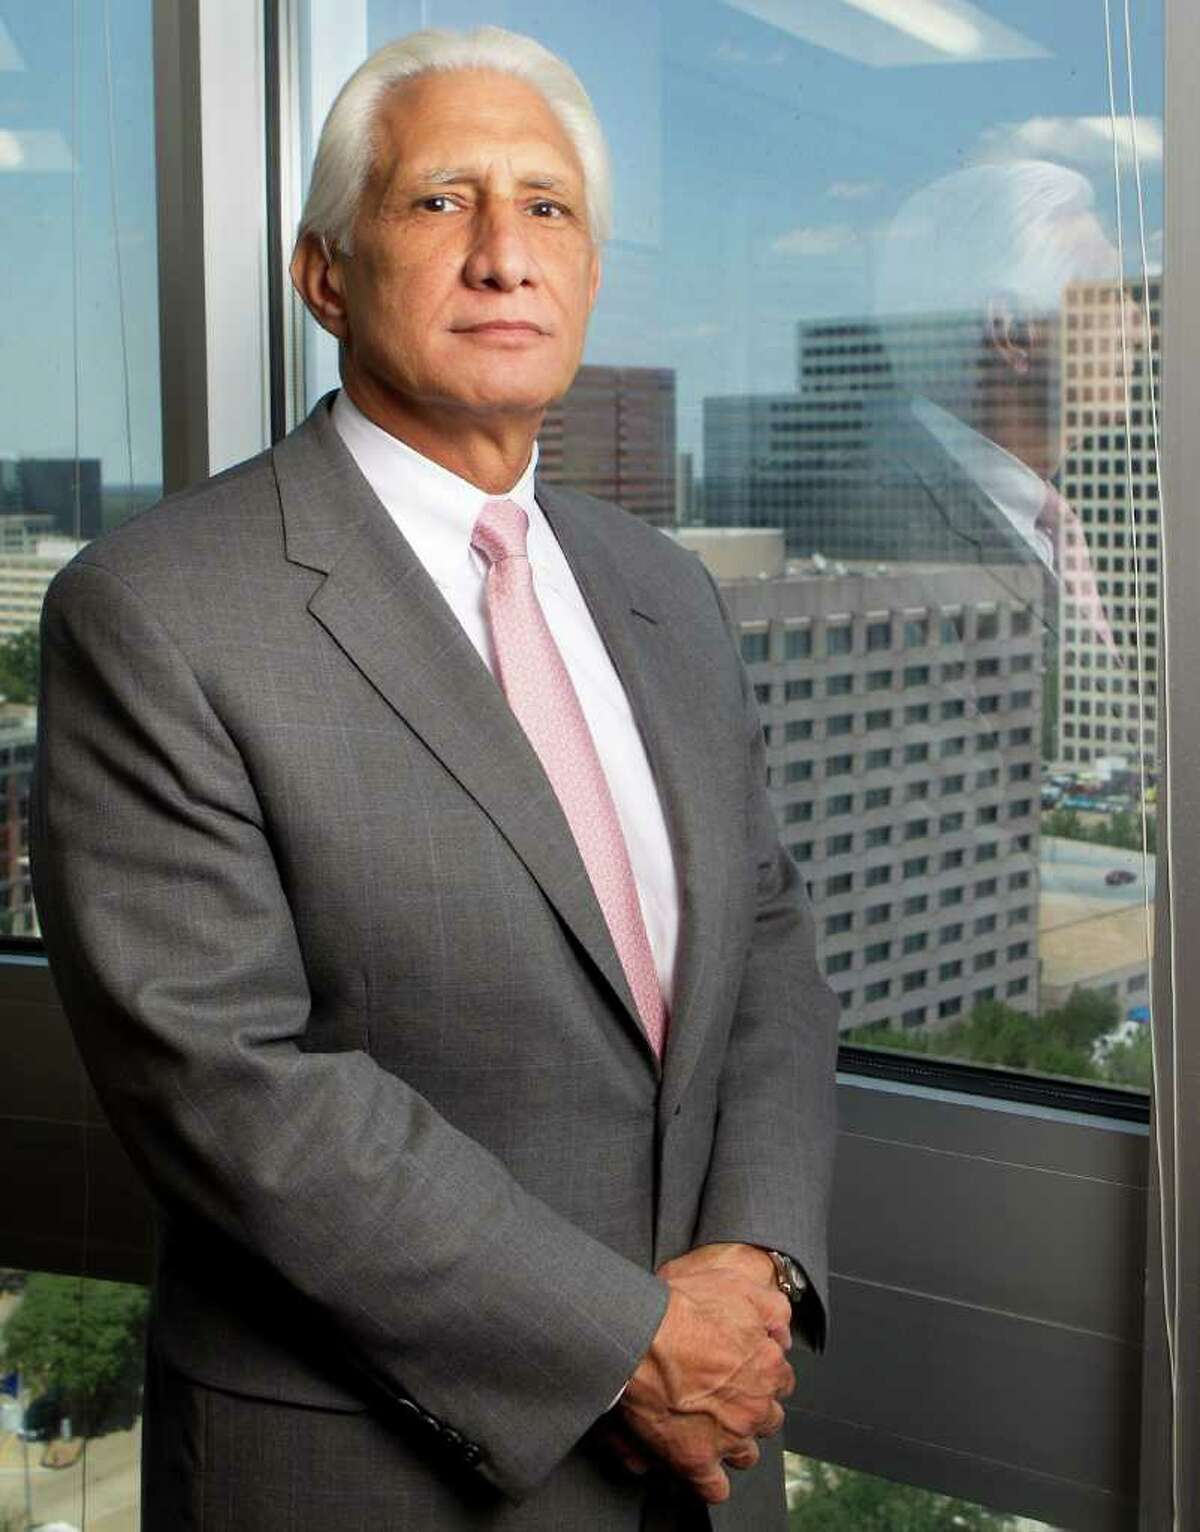 G. Steven Farris, chairman and chief executive officer of Apache Corp. is seen at their corporate office Thursday, May 5, 2011, in Houston. ( Cody Duty / Houston Chronicle )